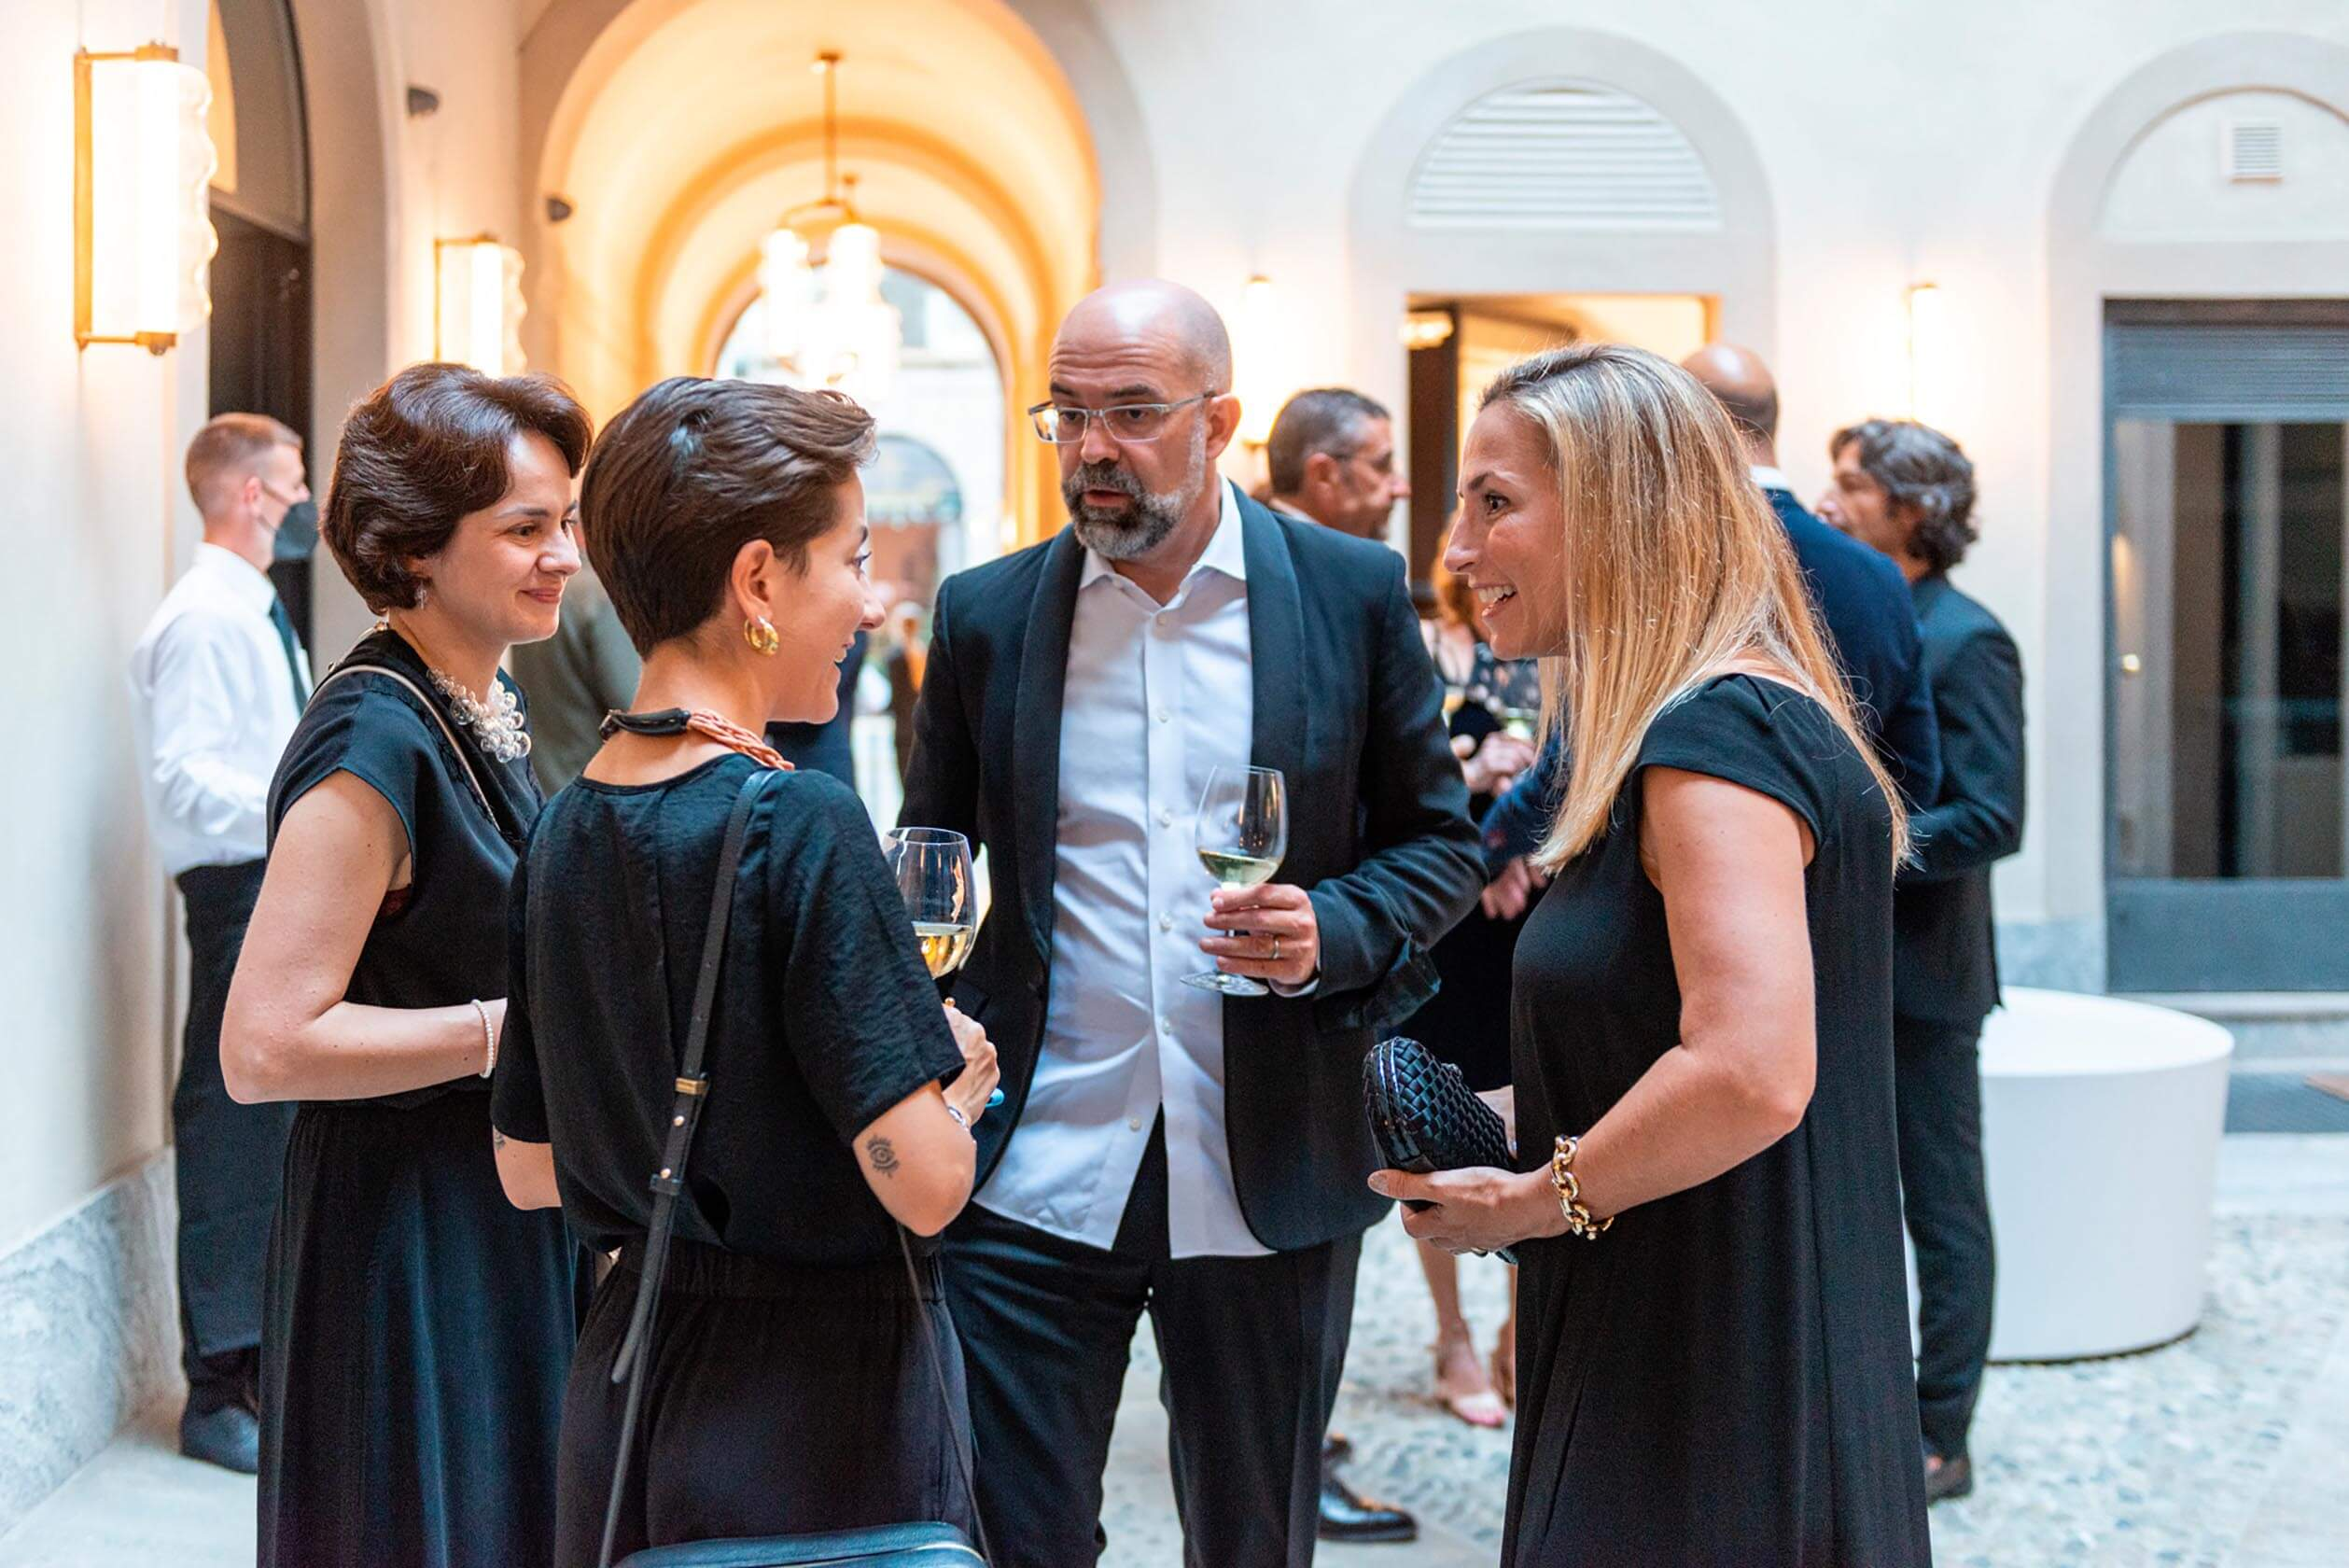 Antonio Linares talking in a group in the square of Laufen space Milano during the festive dinner event.